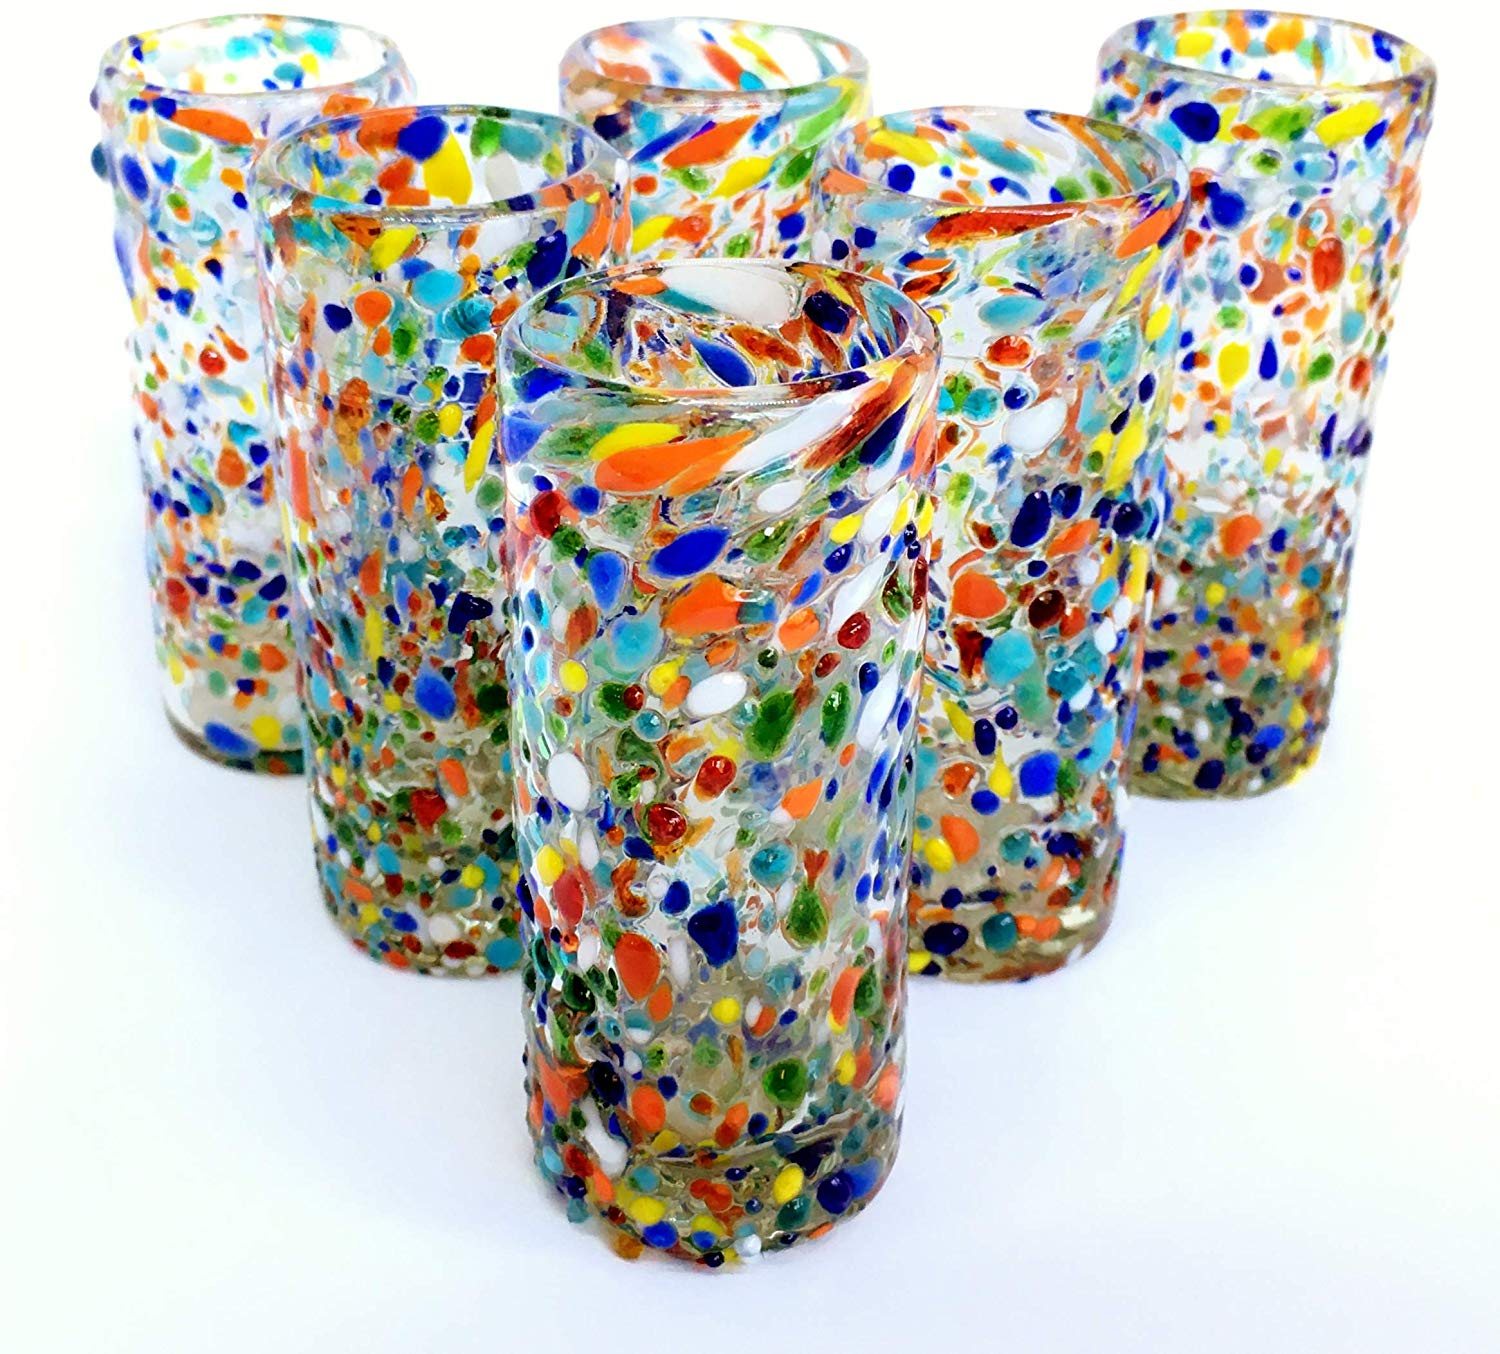 MEXICAN GLASSWARE / 'Confetti Rocks' Tequila shot glasses